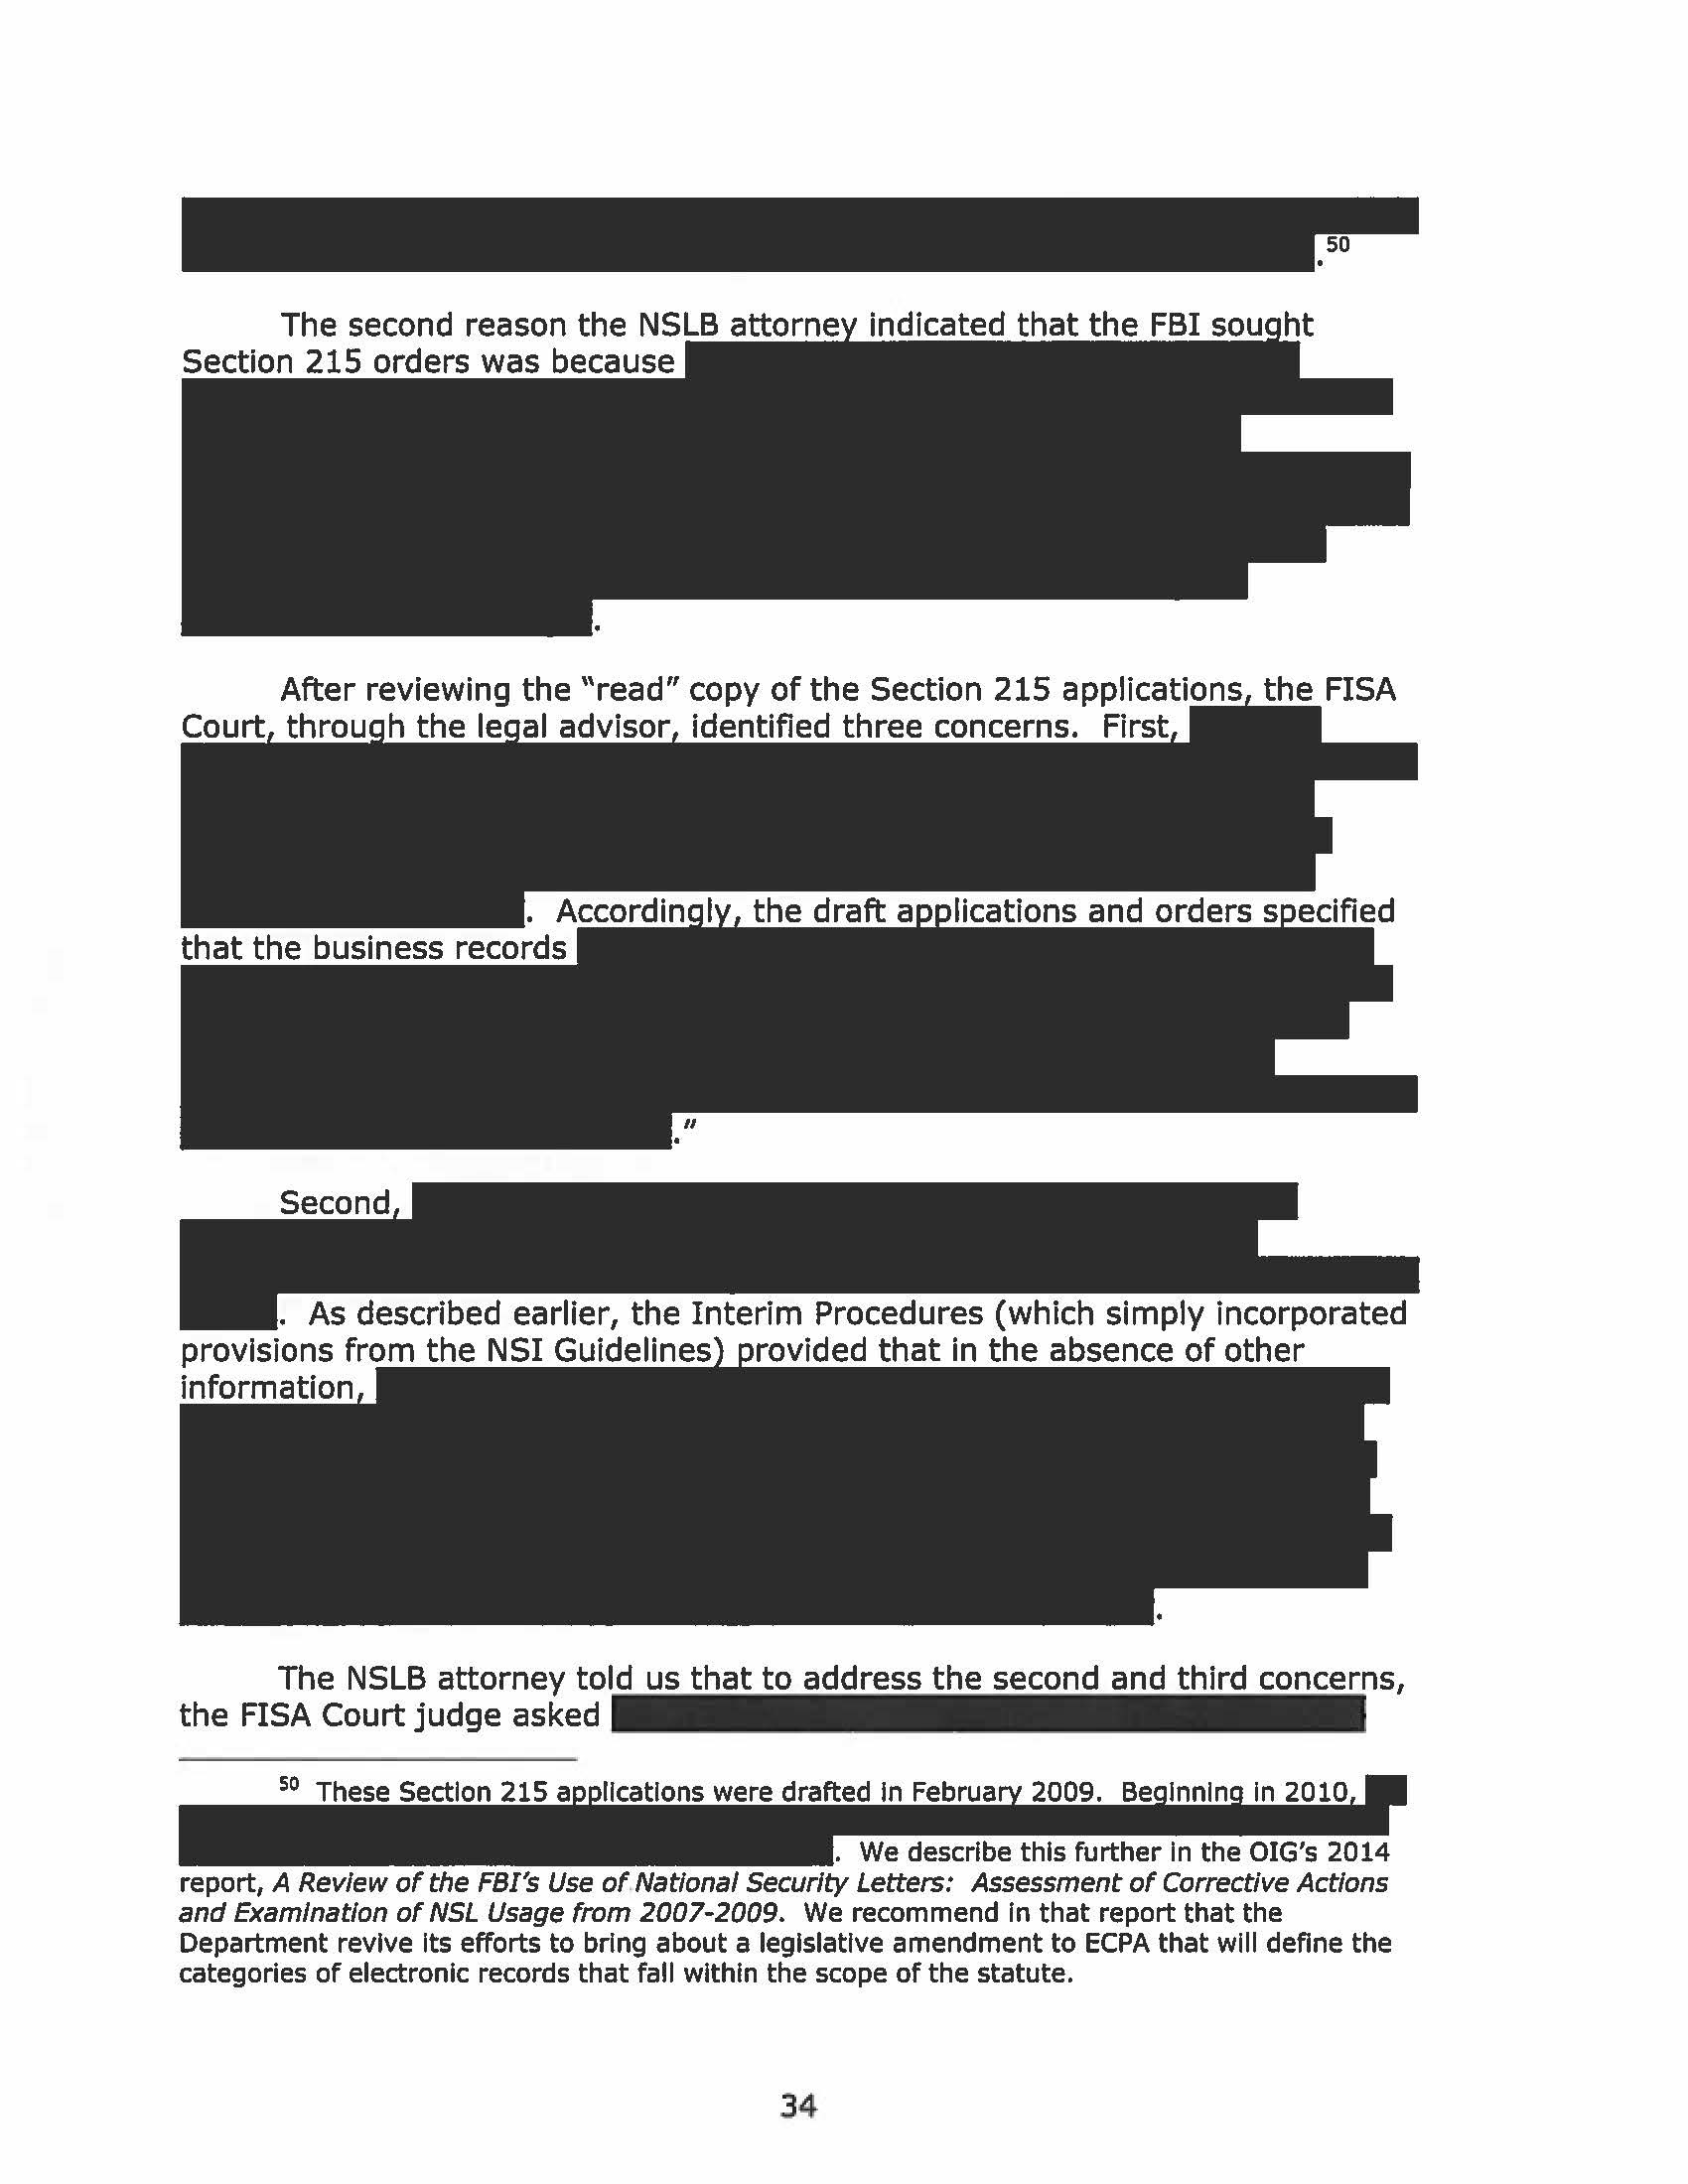 DoJ-FBI-Section215-2007-2009_Page_43